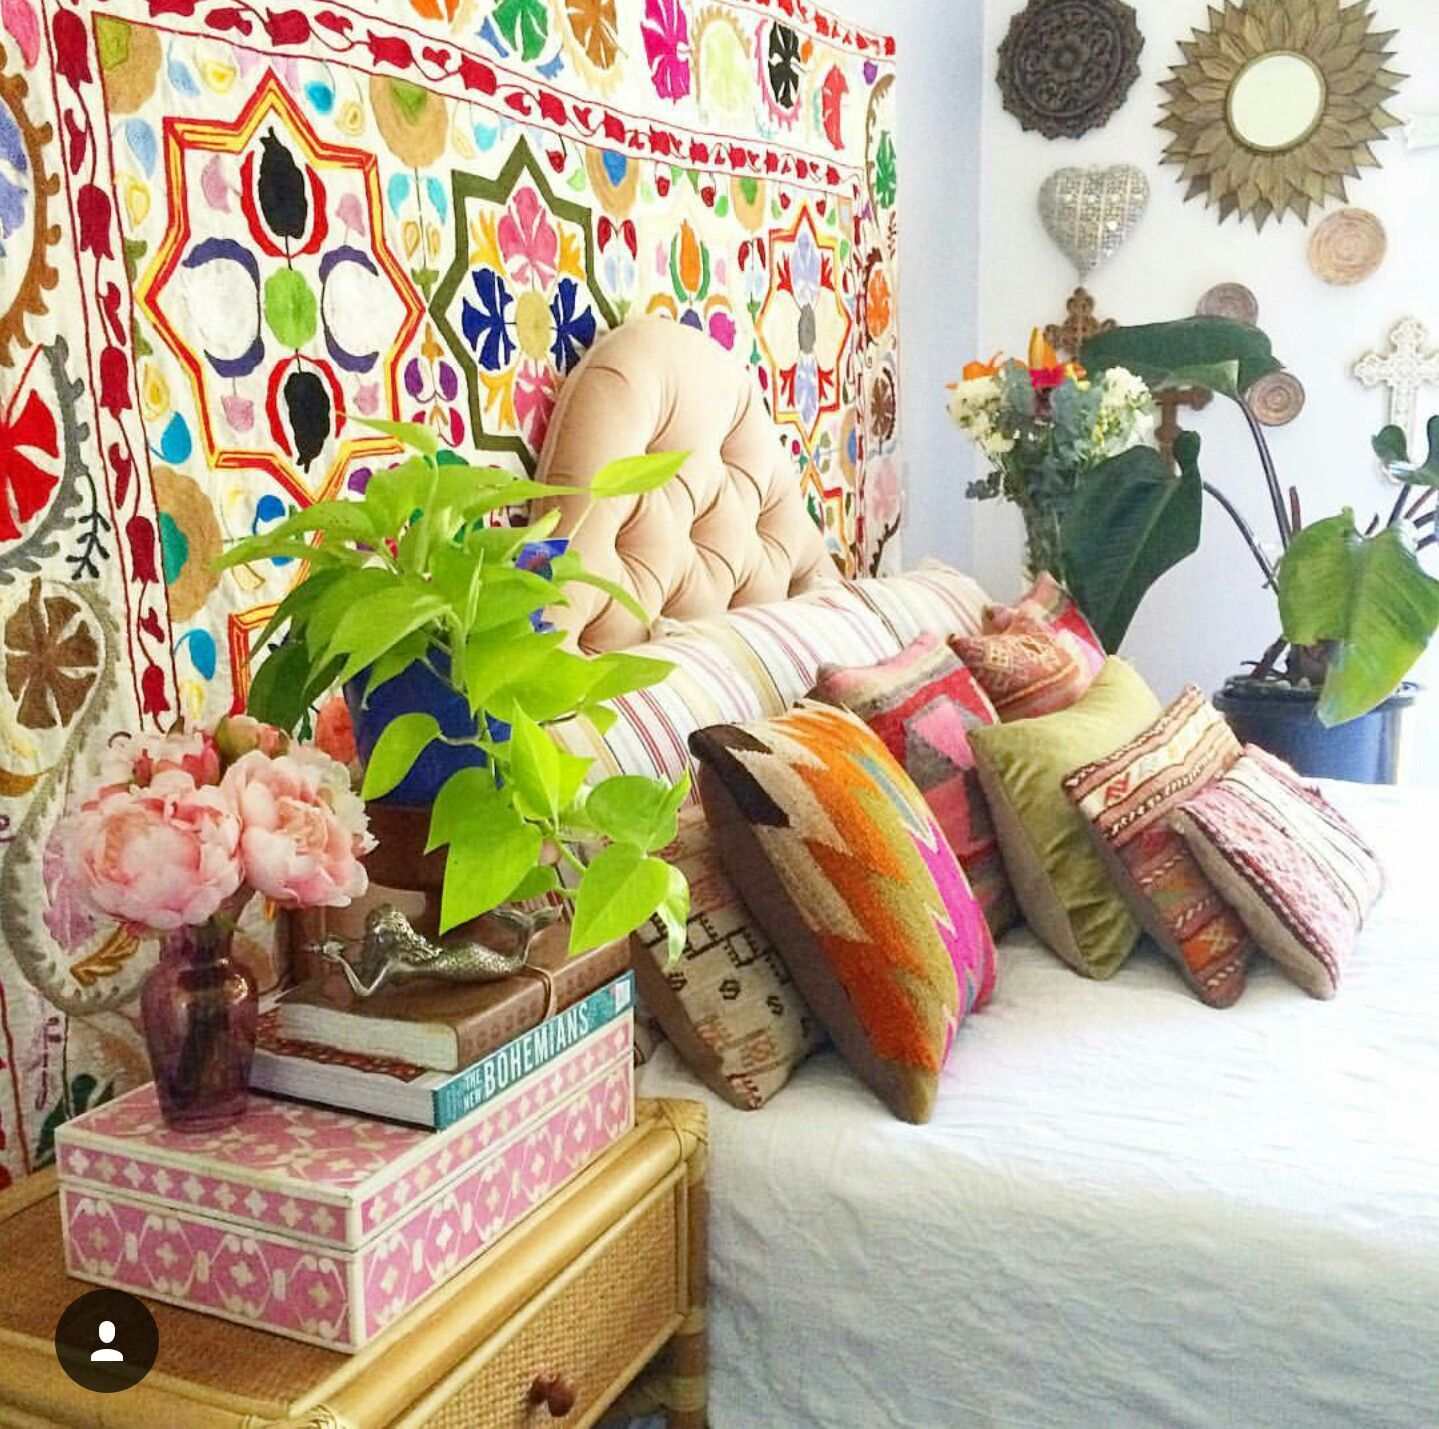 Decoraciones Hippies Look At The Embroidered Headboard Room Decor Ideas